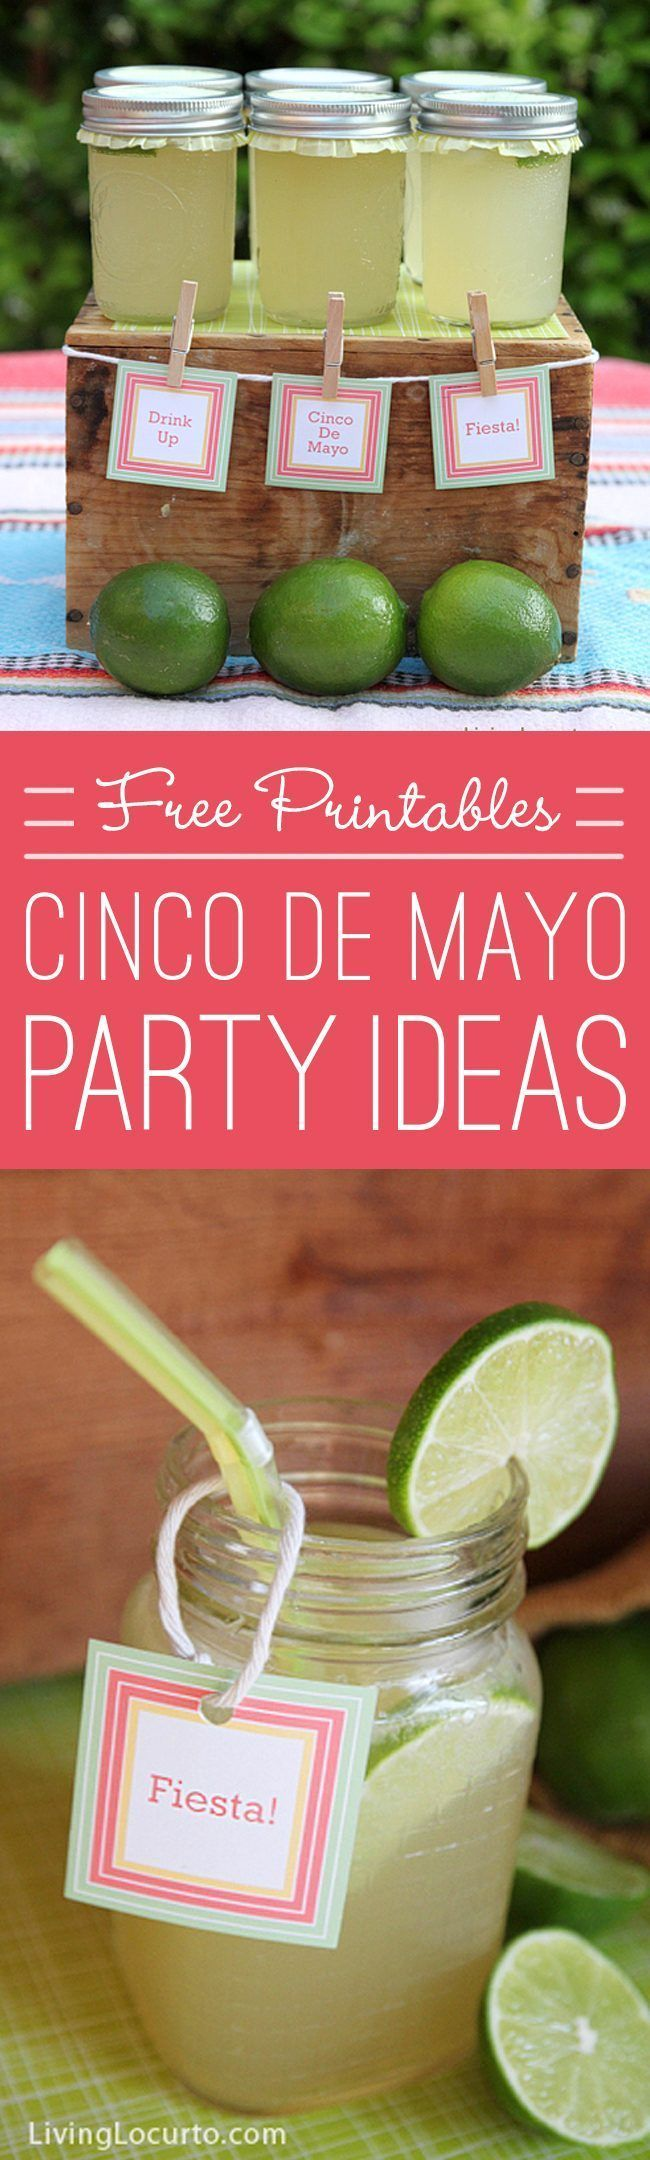 Love these Cinco de Mayo Party Ideas!  An easy Margarita Recipe in a Jar and cute Free Party Printables. http://LivingLocurto.com